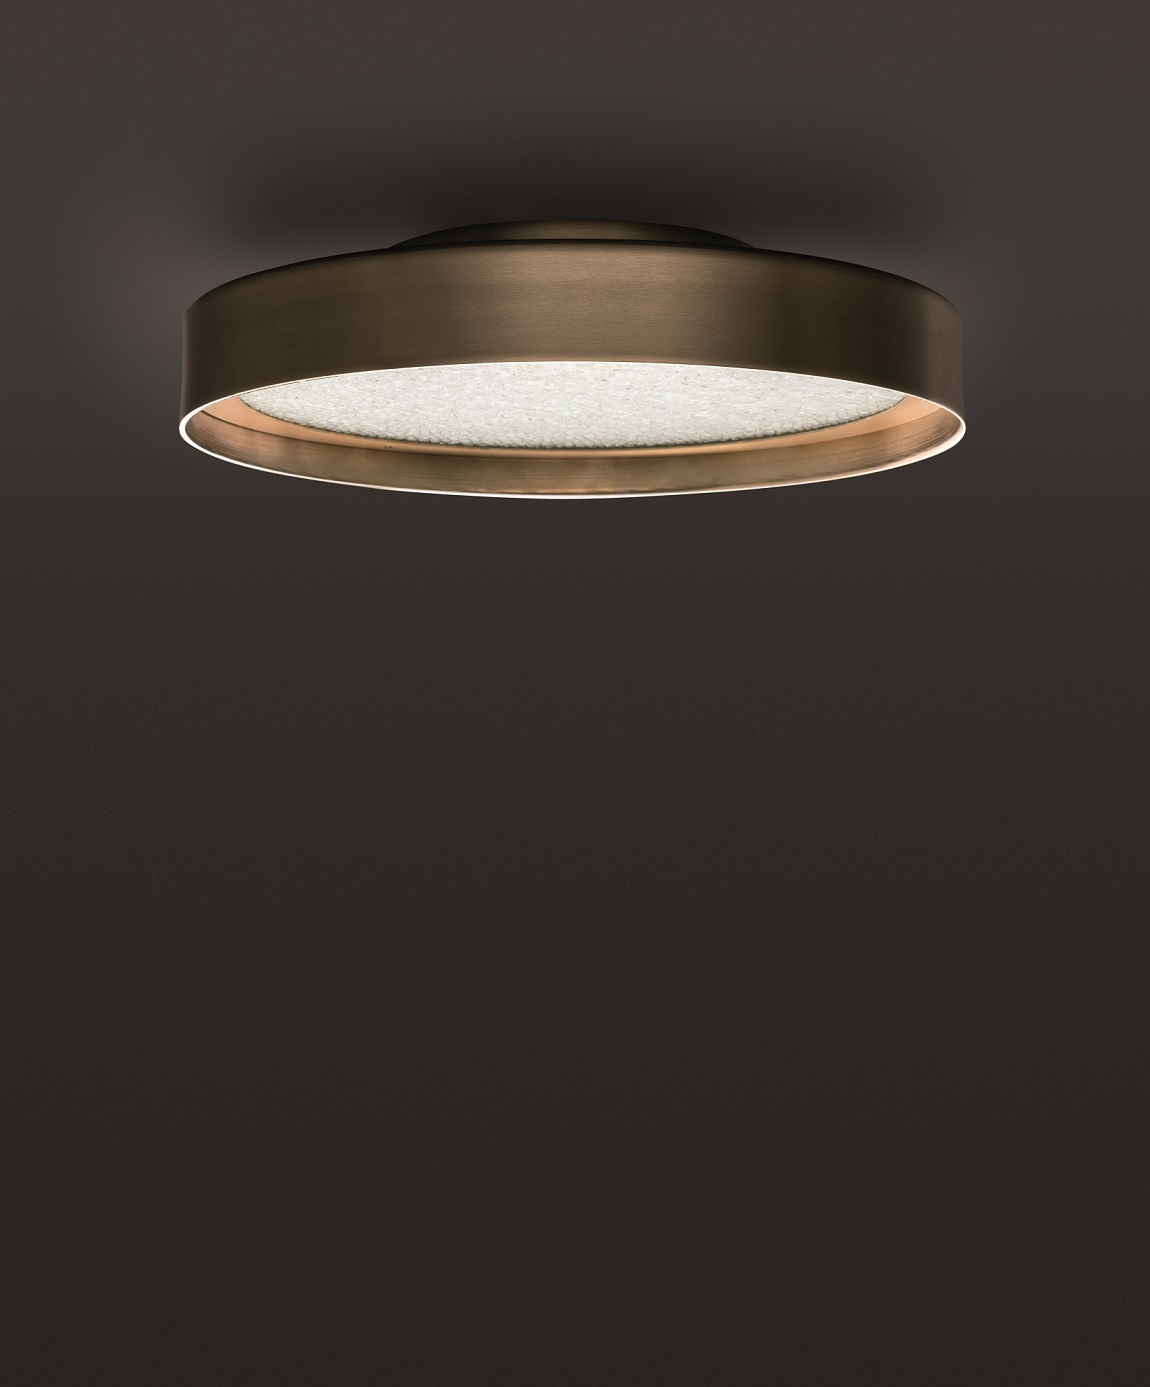 'Berlin 720' ceiling light by Christophe Pillet for Oluce.